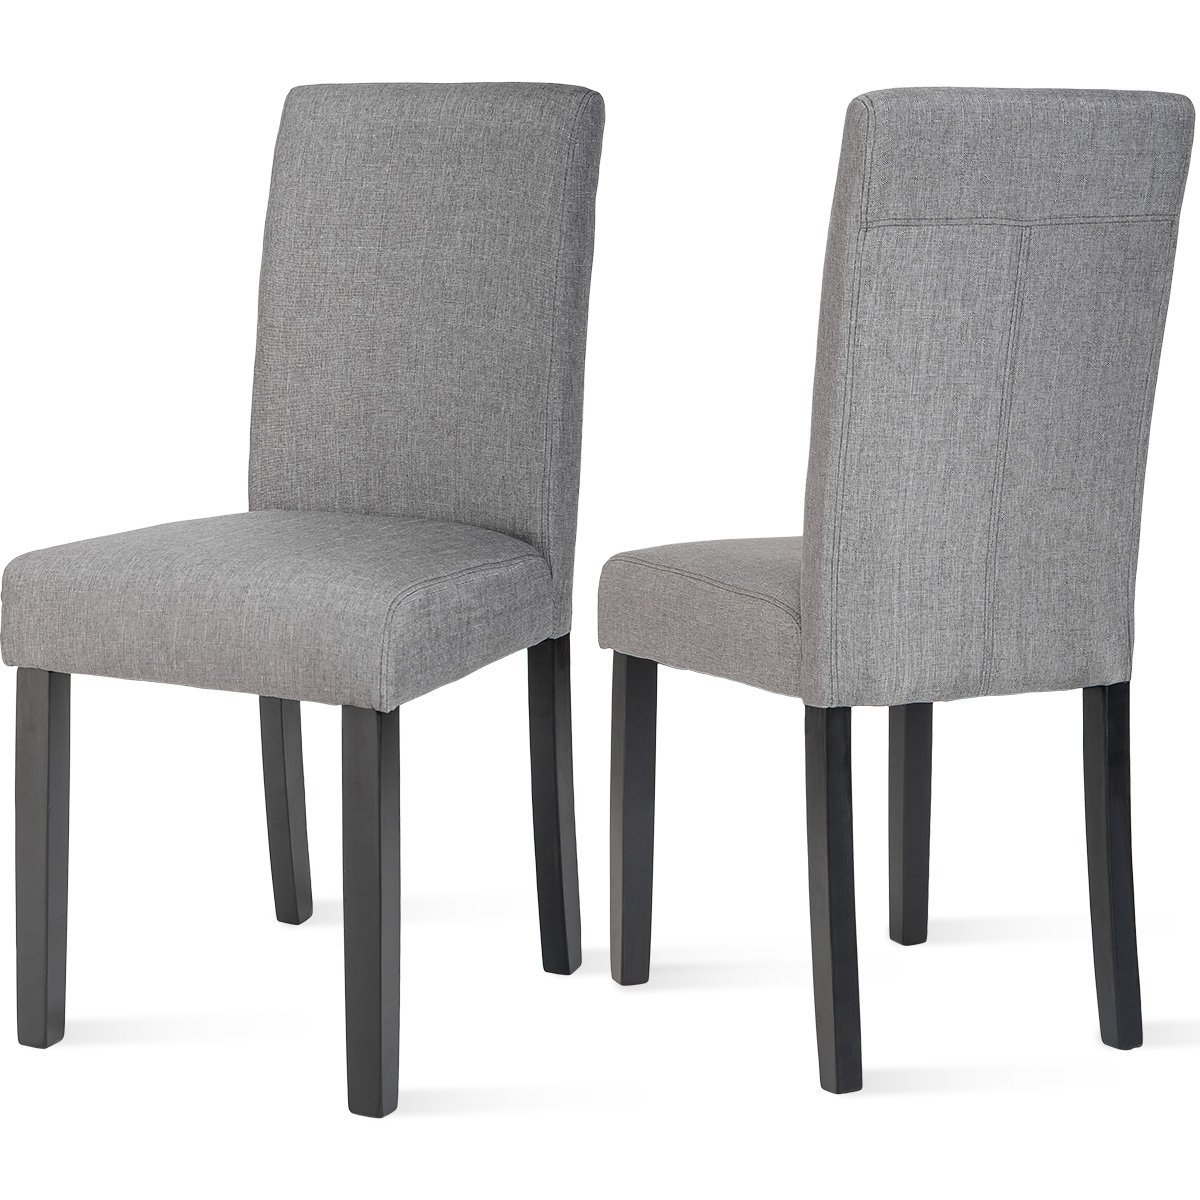 Dining Chairs Set Of 2 Urban Style Padded Parson Chair